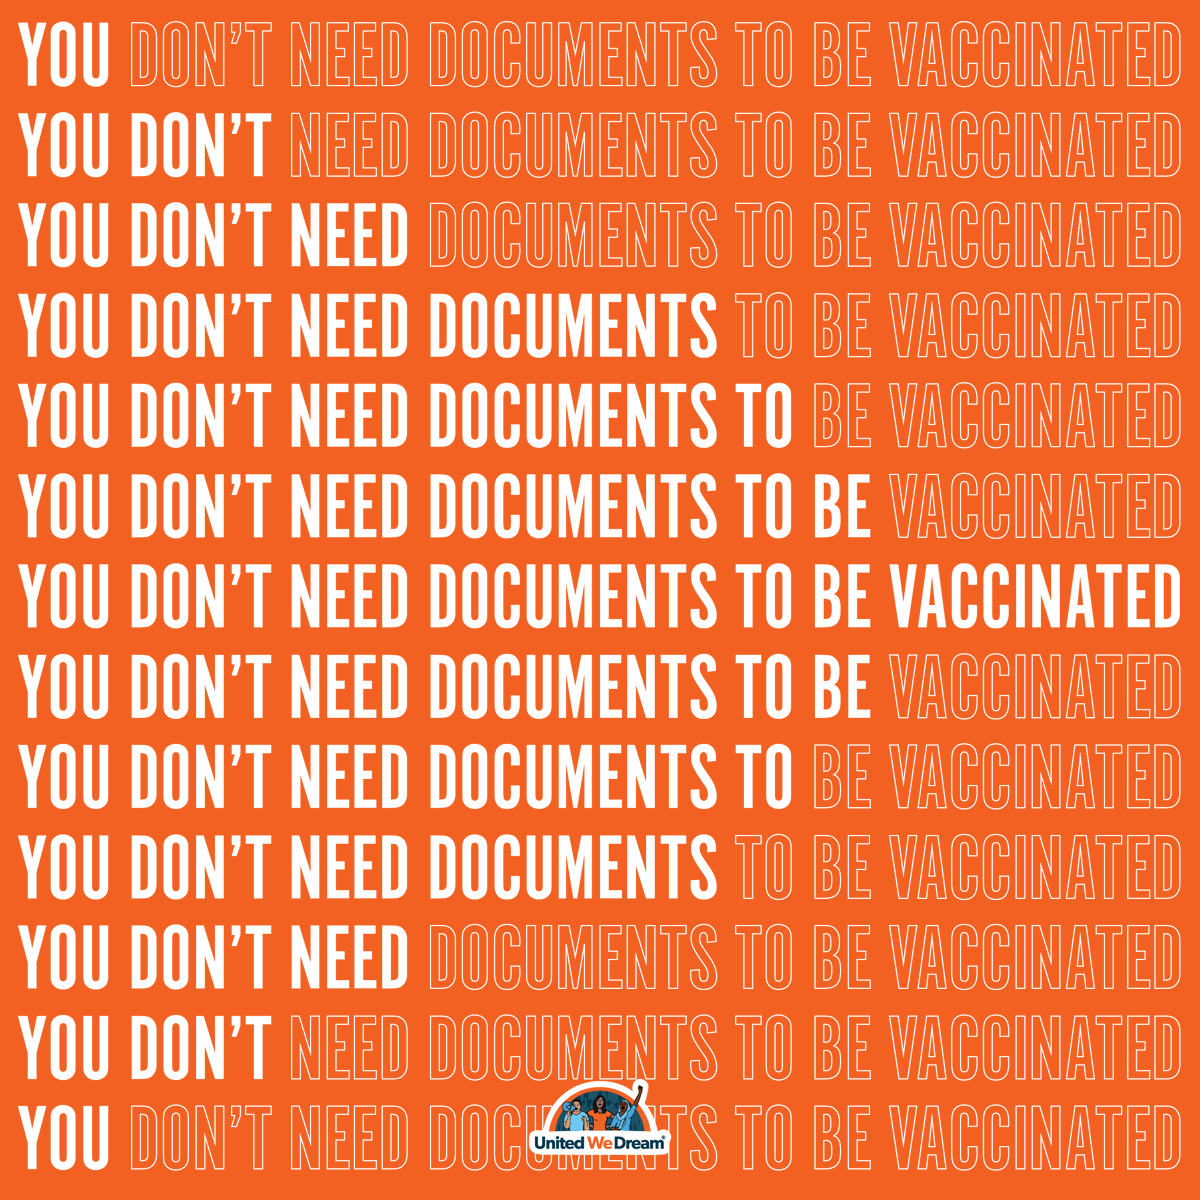 Undocumented people can get the covid-19 vaccine! In some states, like Florida, the government is placing barriers for our community. Asking for ID, social security, or proof of citizenship is WRONG.